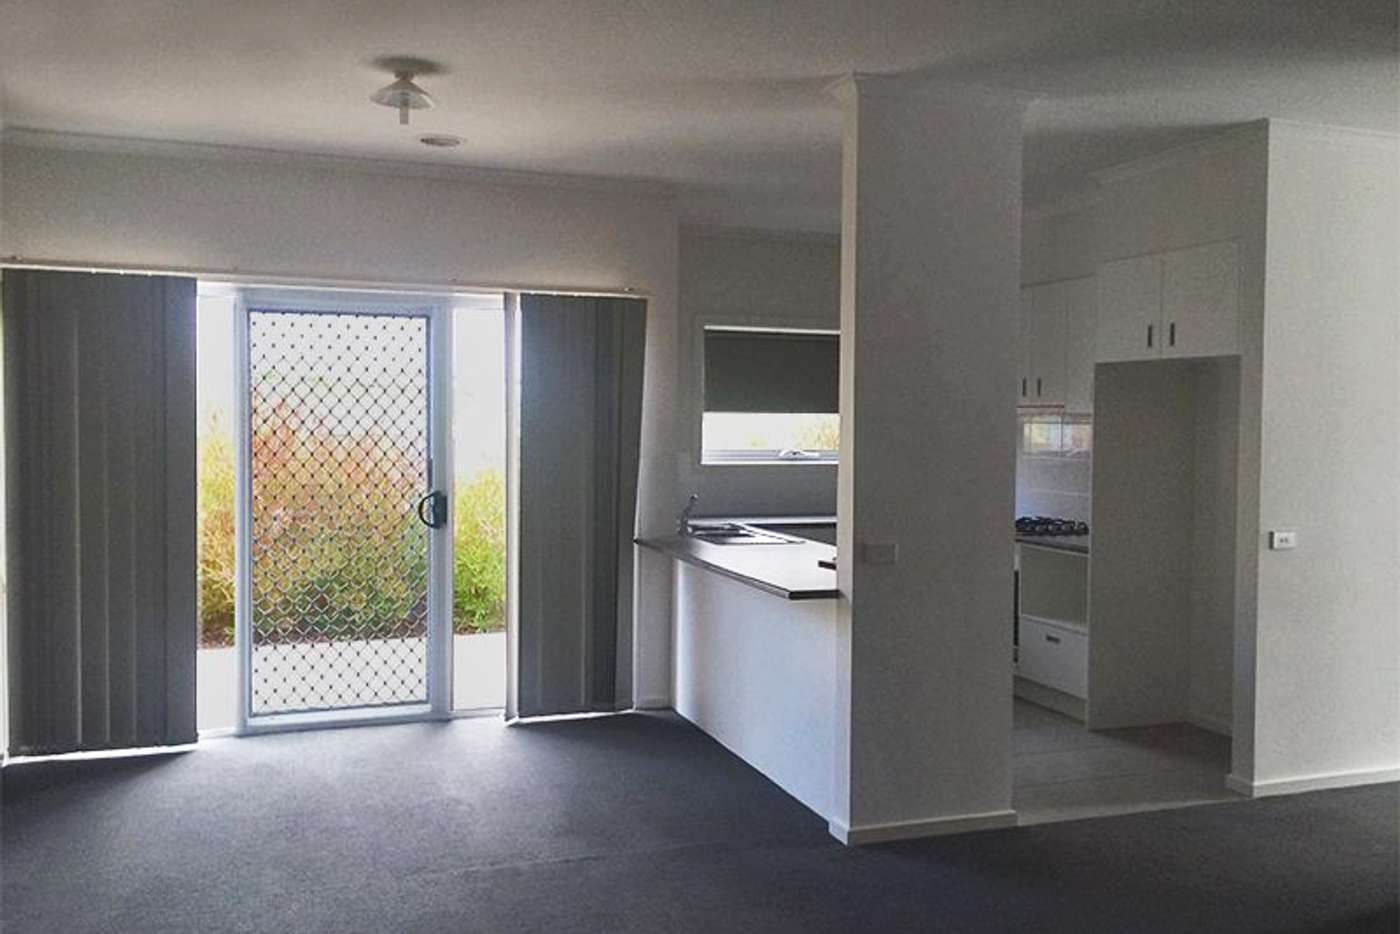 Seventh view of Homely townhouse listing, 7/69 Thunder Street, North Bendigo VIC 3550